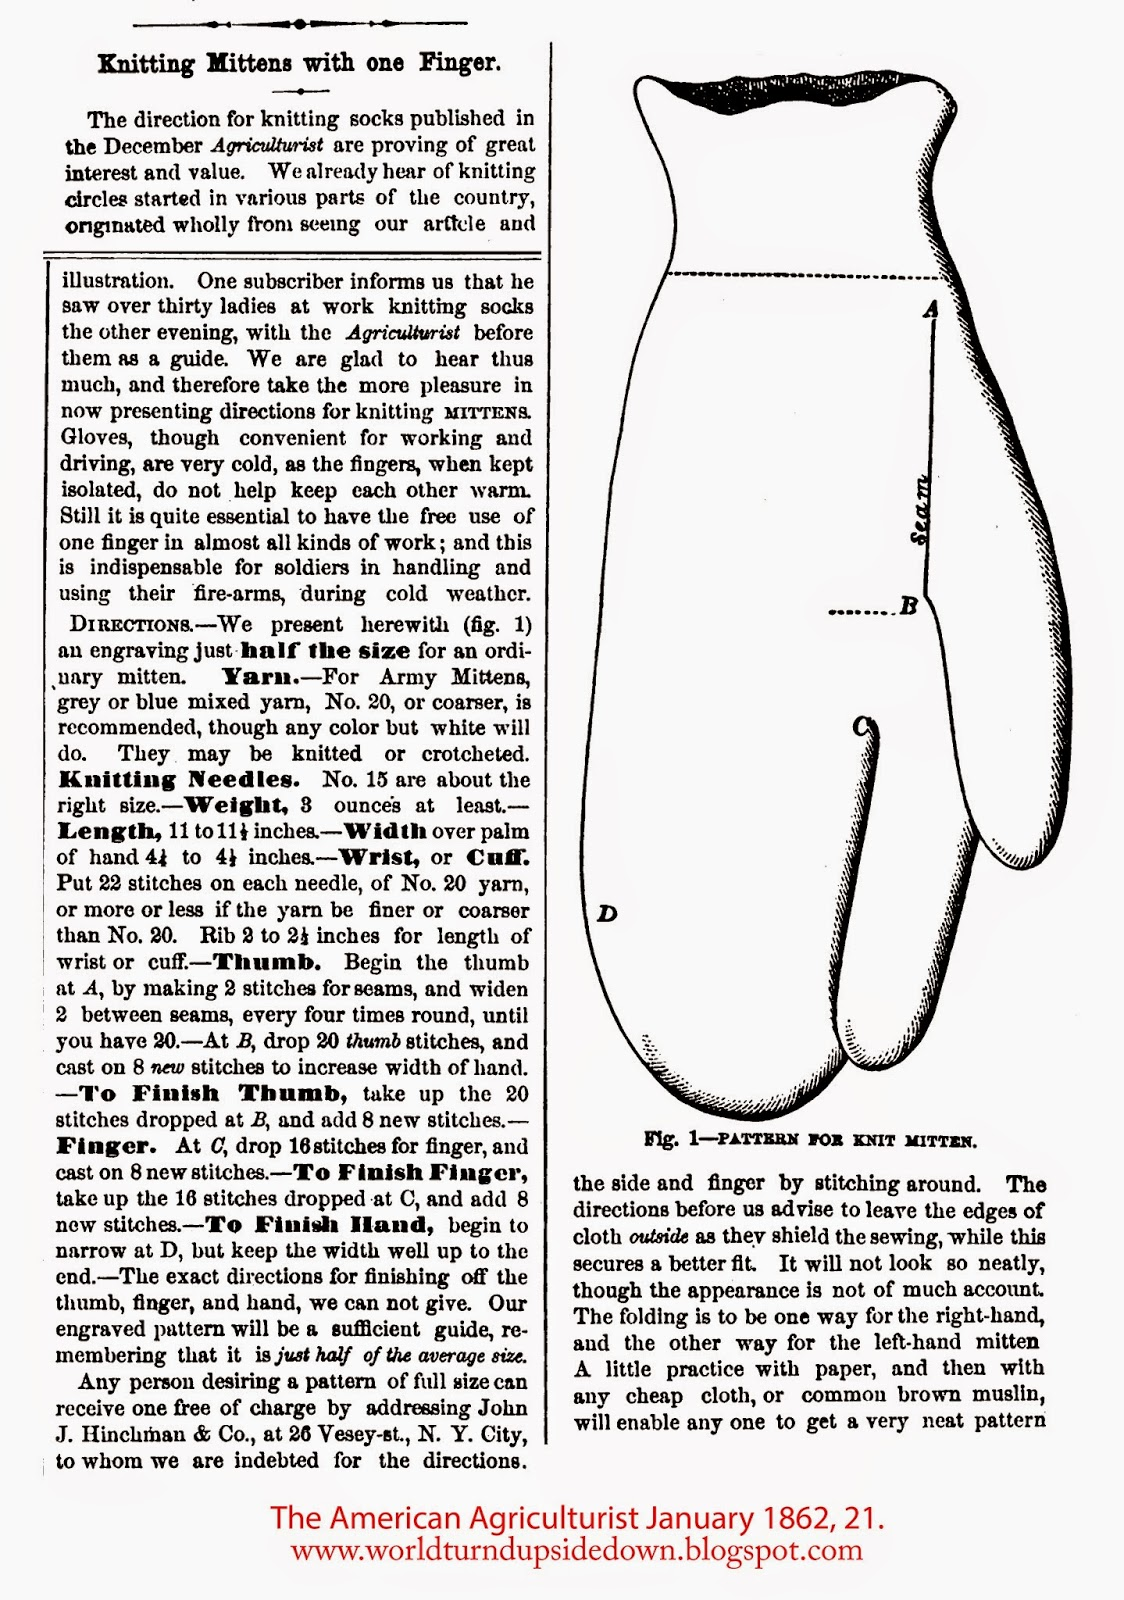 Civil War Shooter's Mittens